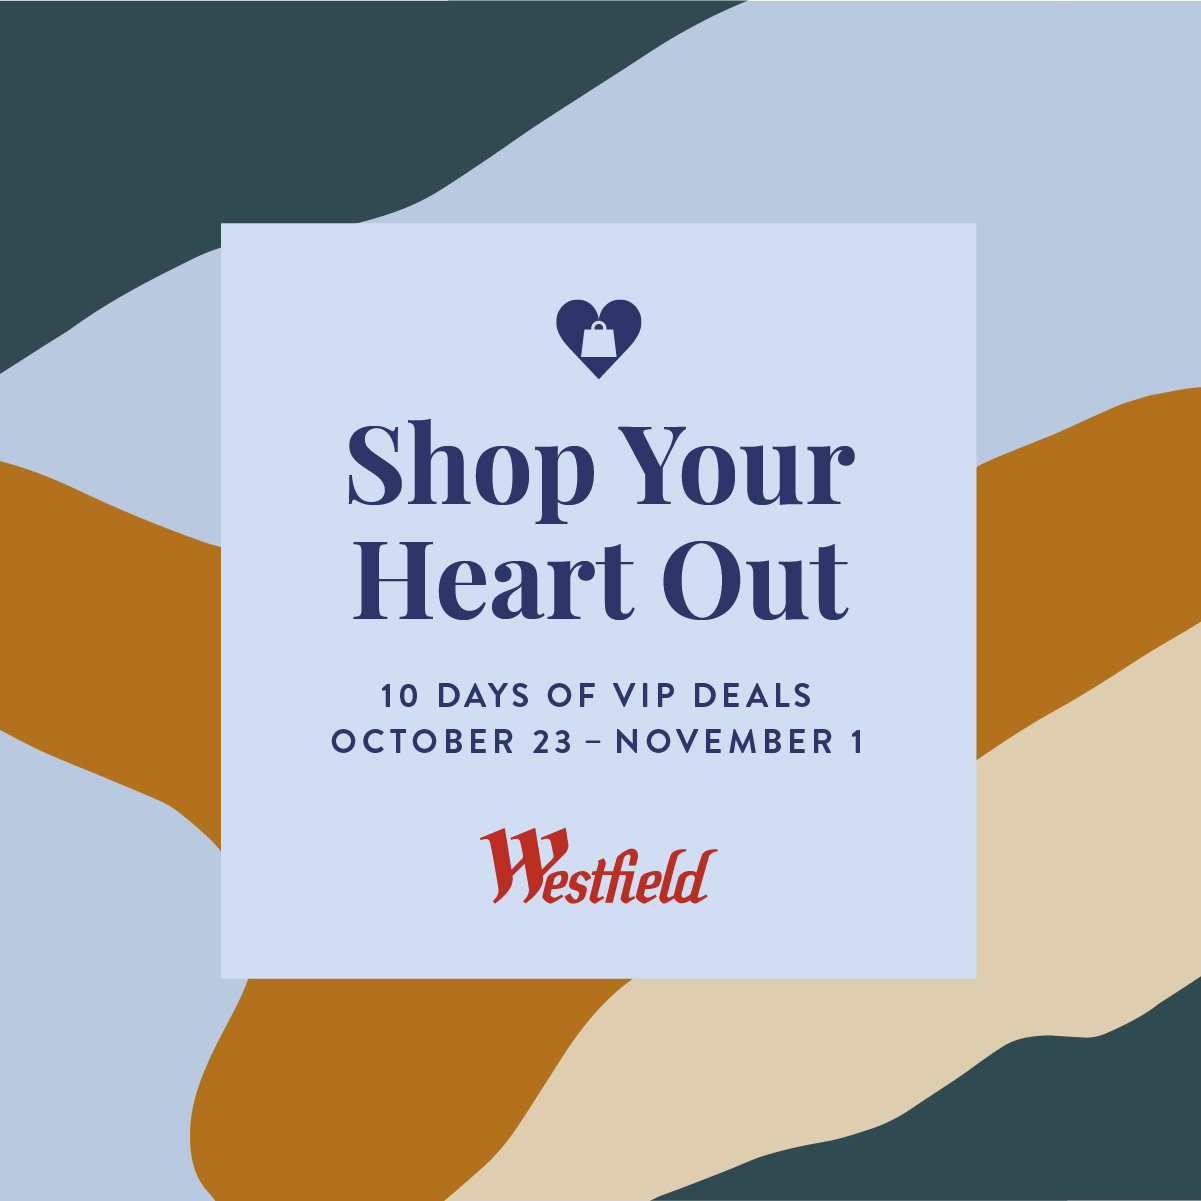 Shop Your Heart Out Event